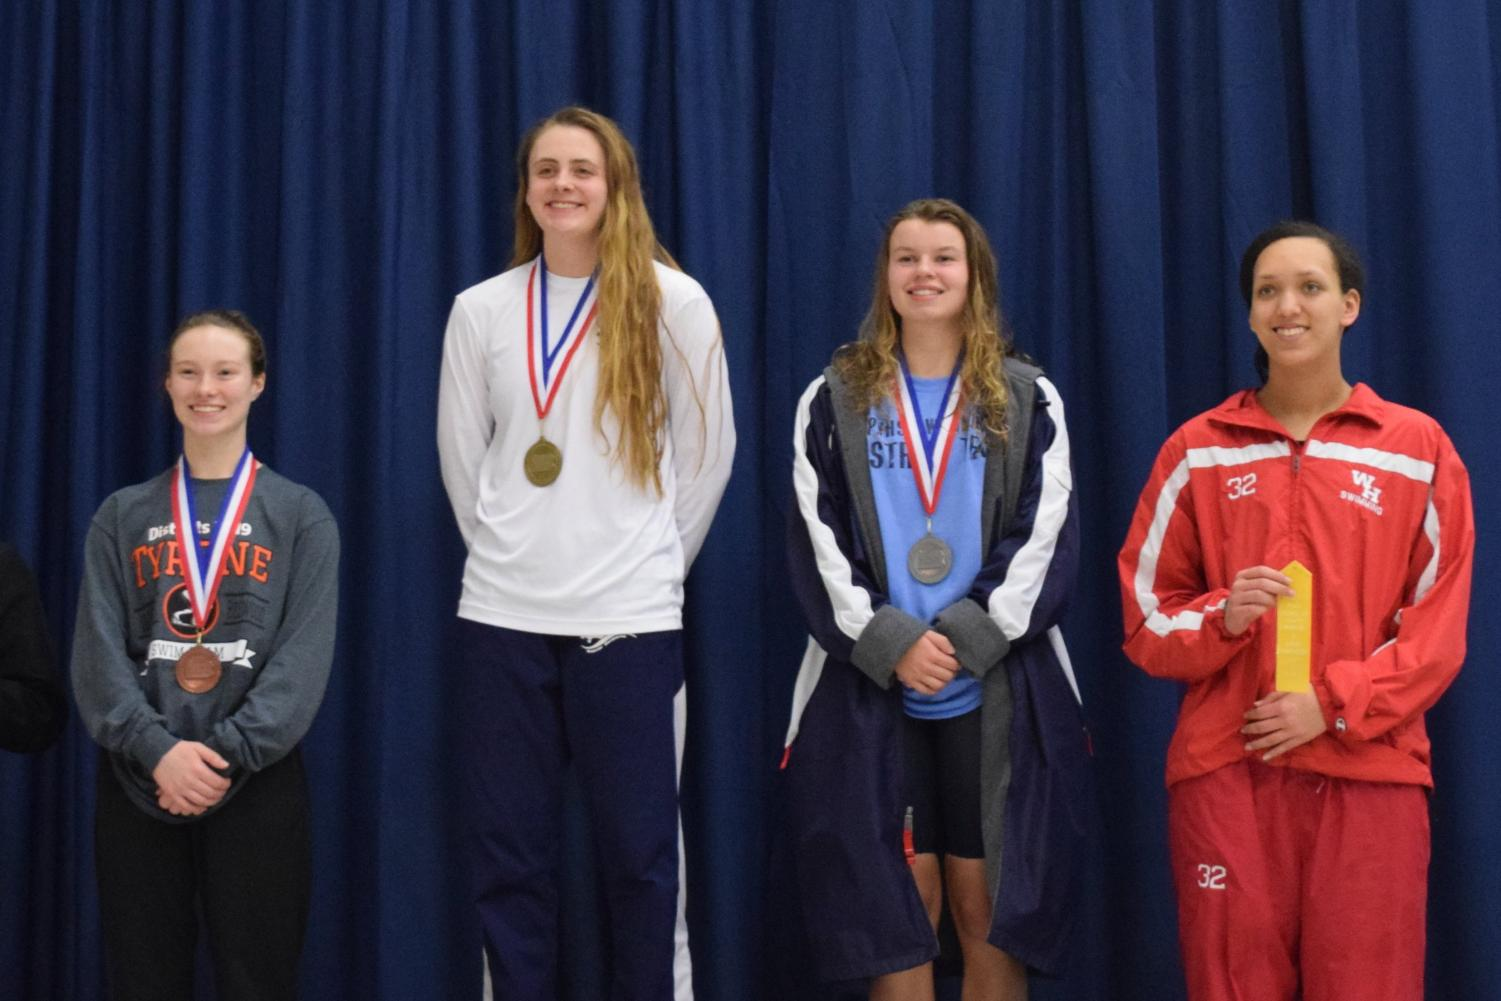 Sophomore Maddie Coleman smiling proudly with her bronze medal from the D6 District Championship meet.